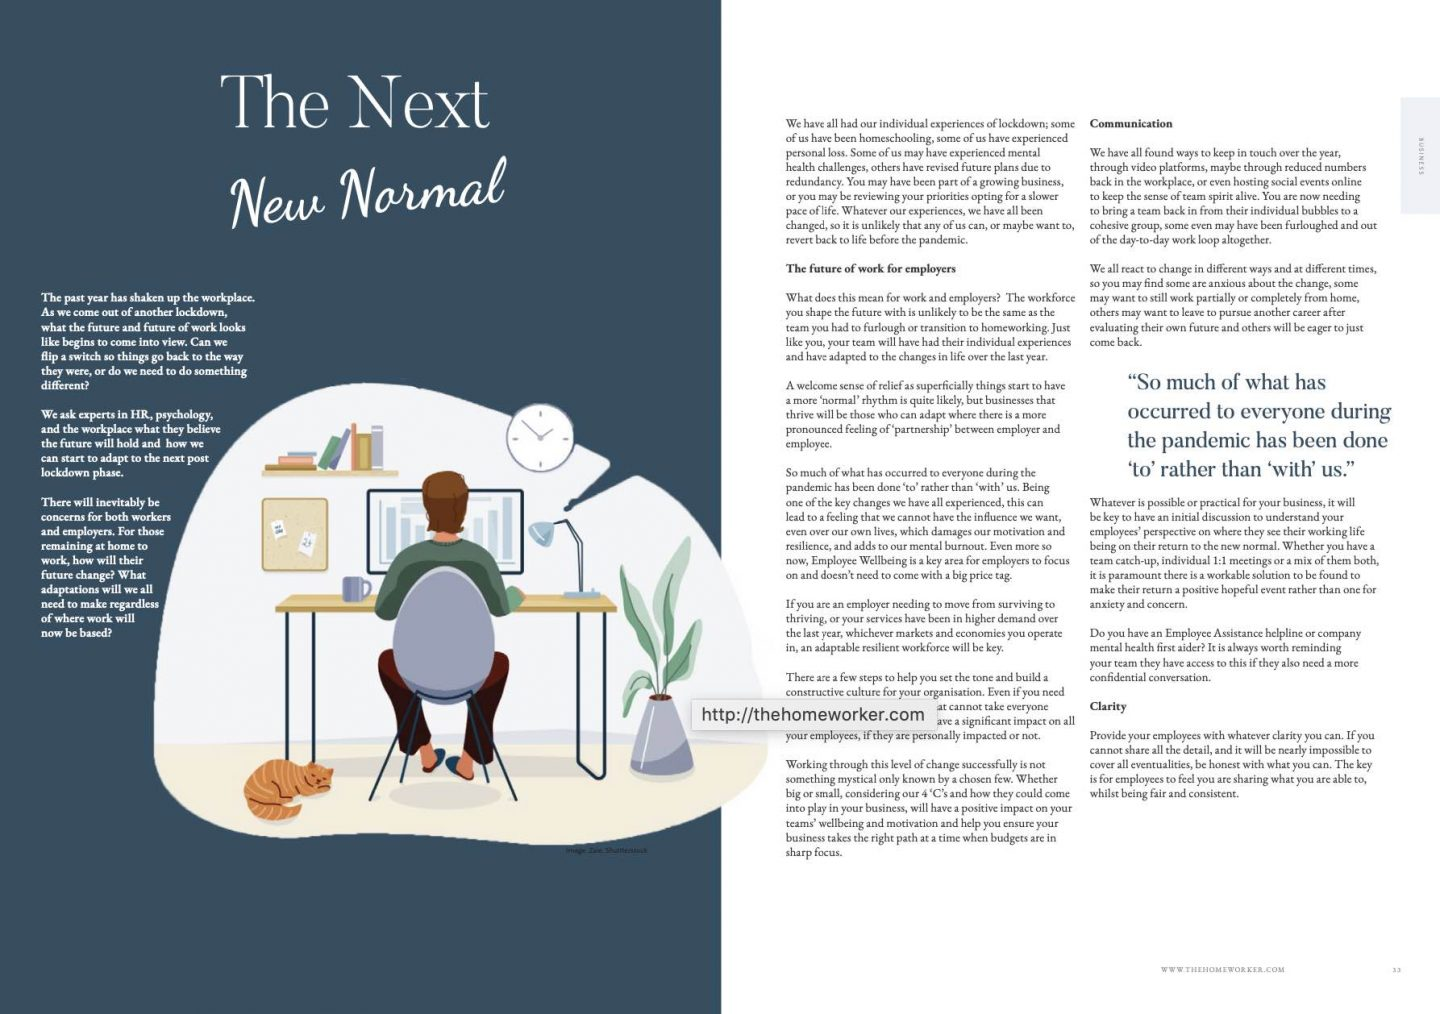 how workplaces transition to the next phase of life post lockdown The Homeworker magazine article